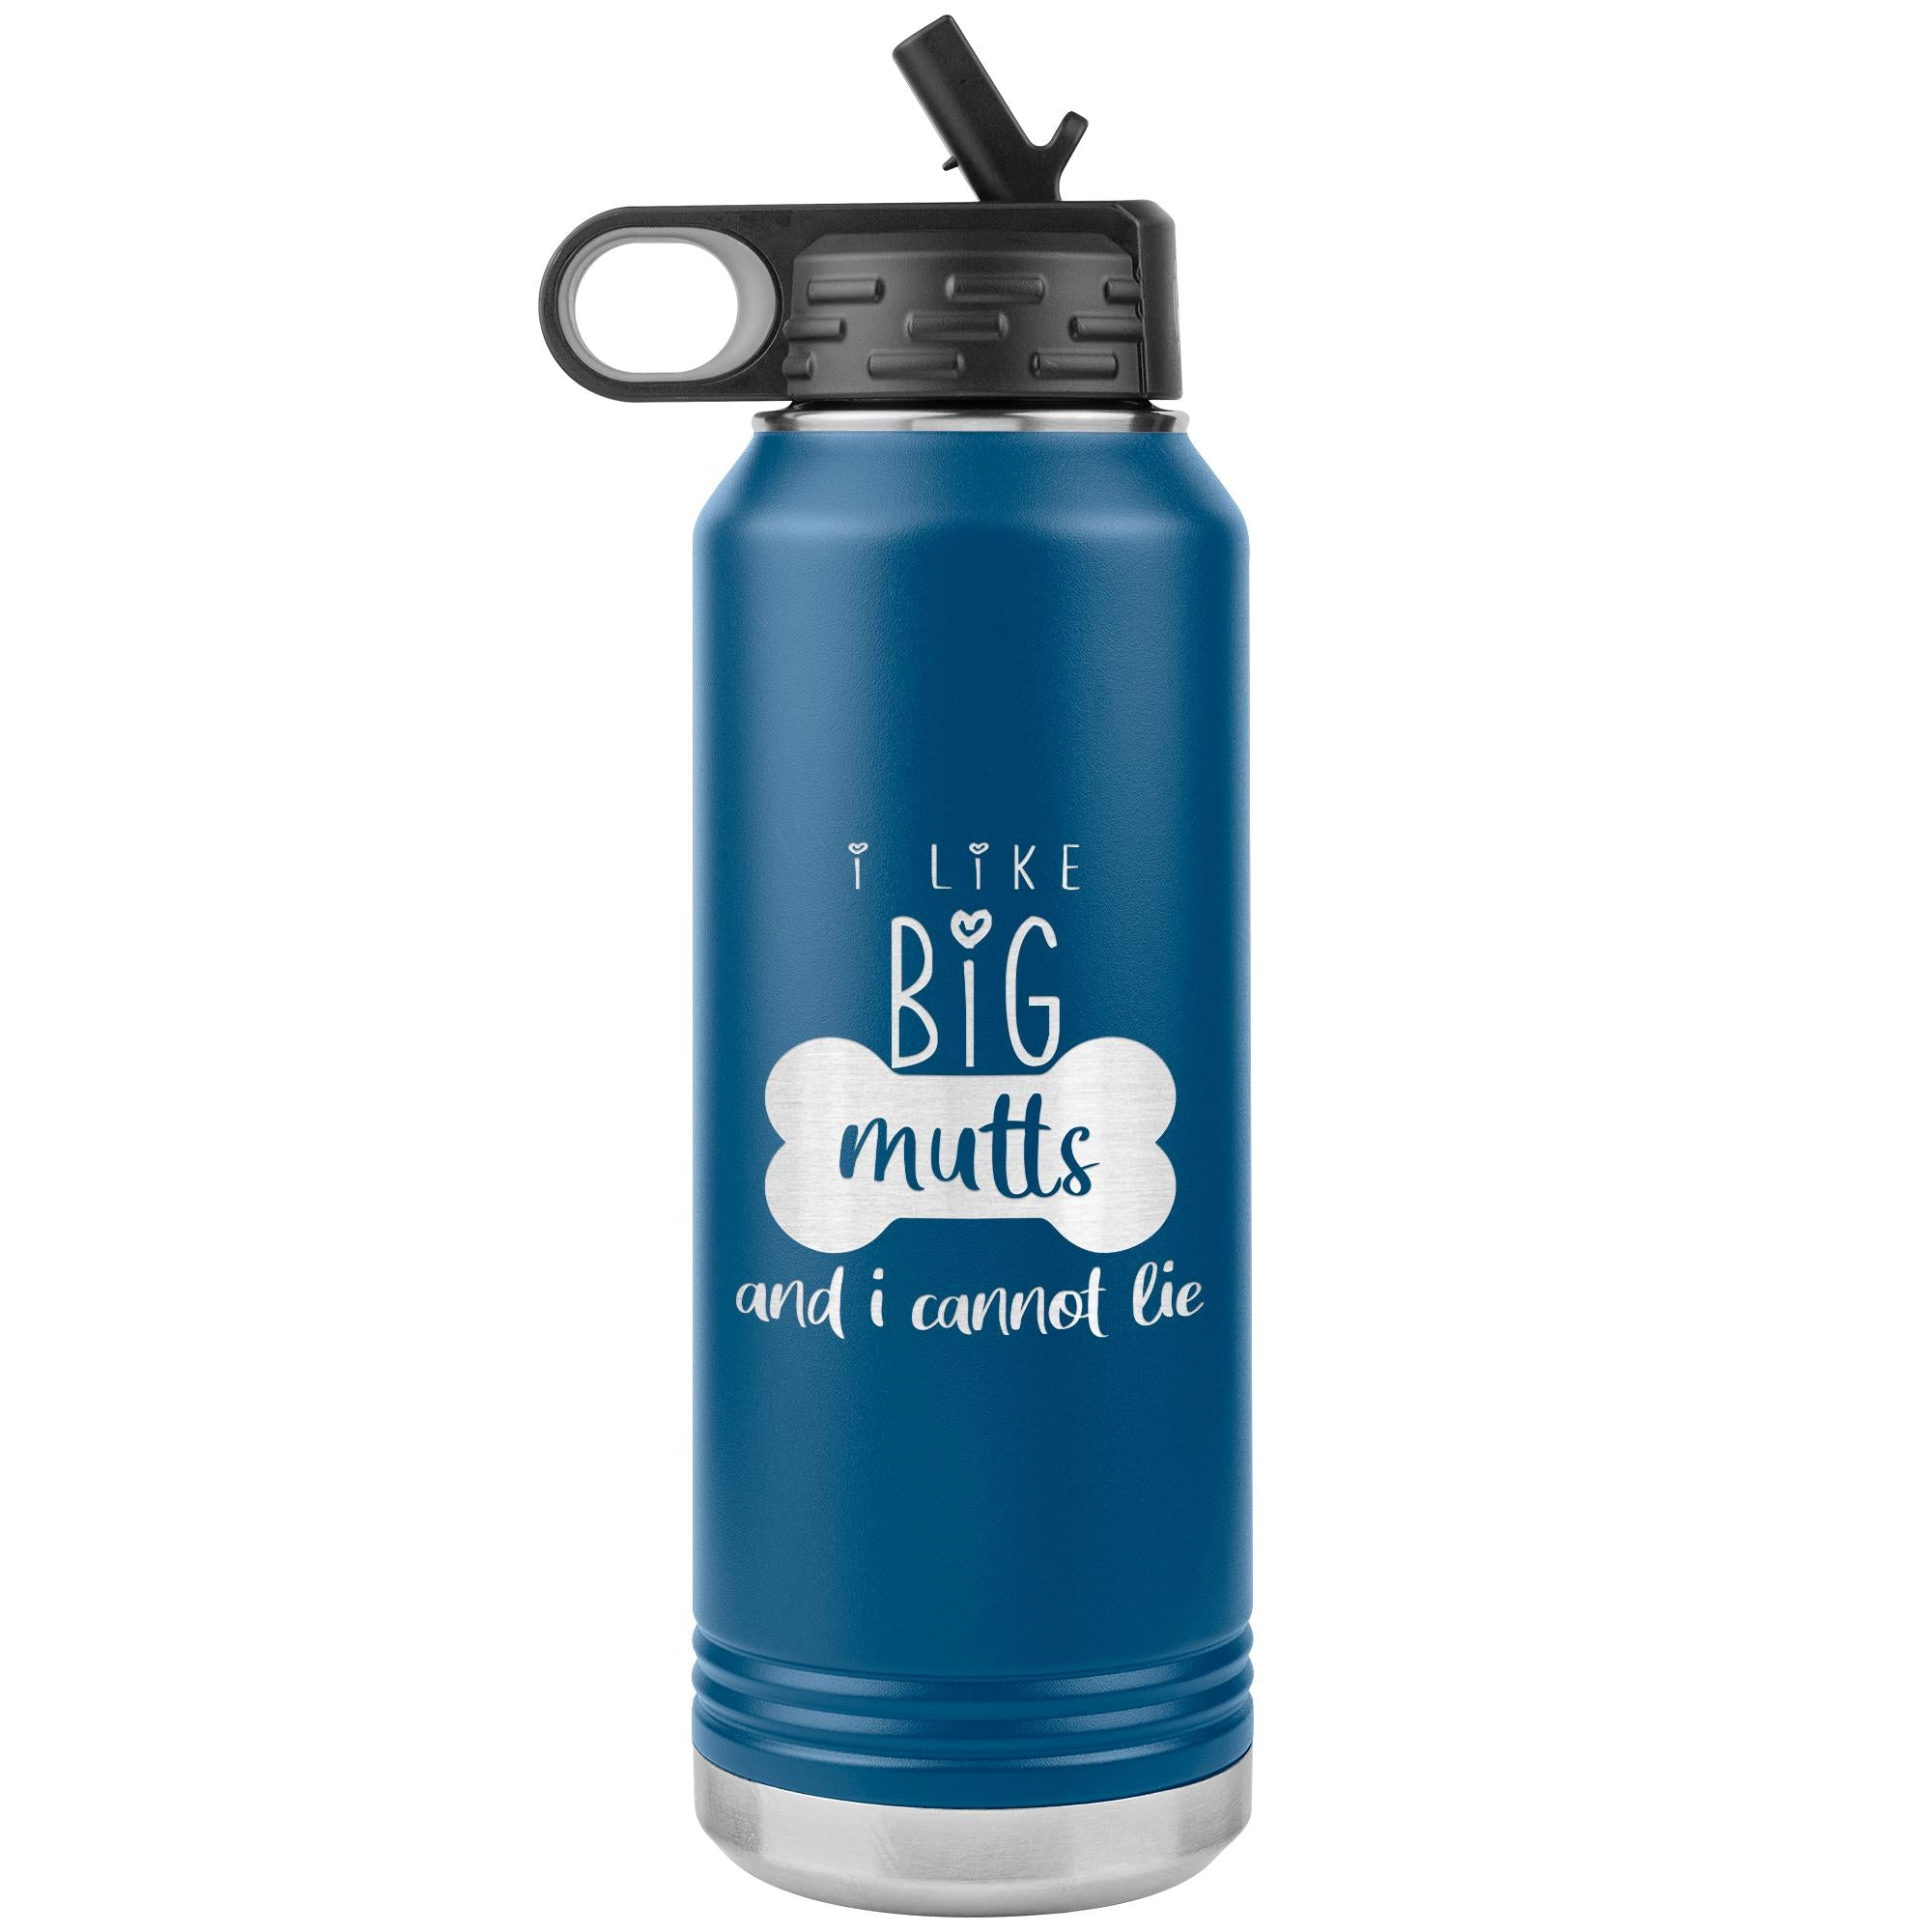 I Like big mutts Water Bottle Tumbler 32 oz-Tumblers-I love Veterinary